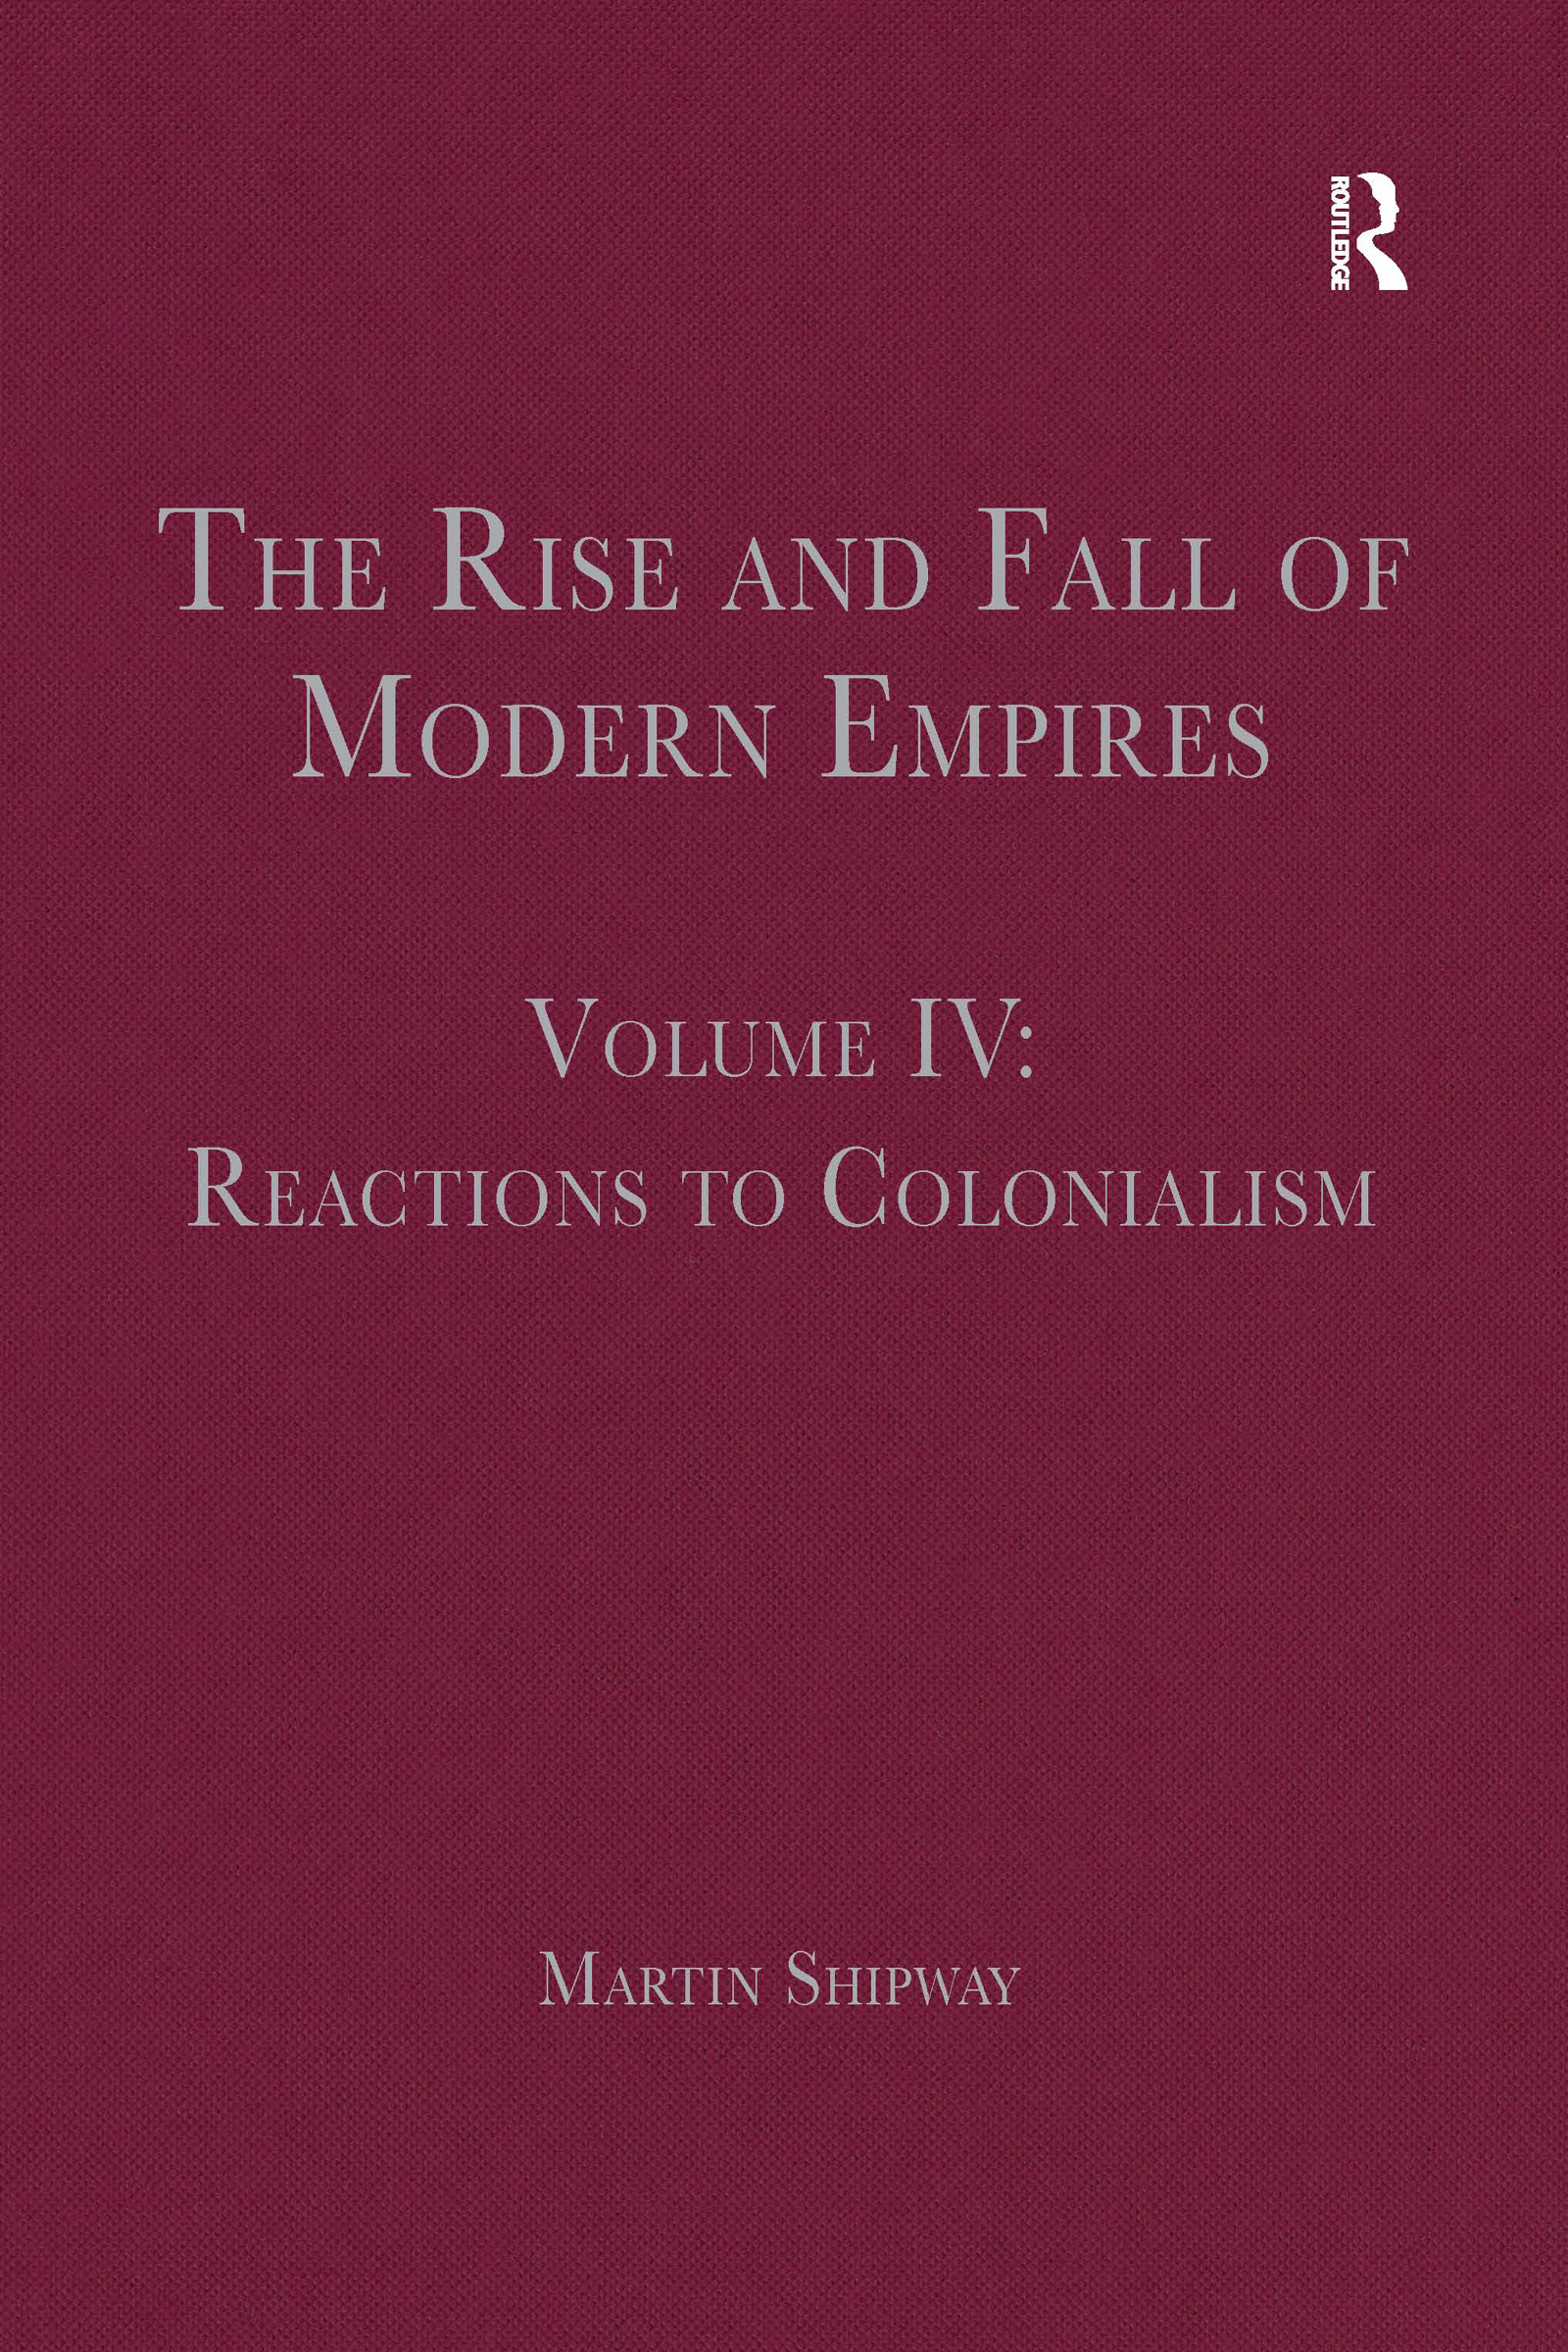 The Rise and Fall of Modern Empires, Volume IV: Reactions to Colonialism book cover